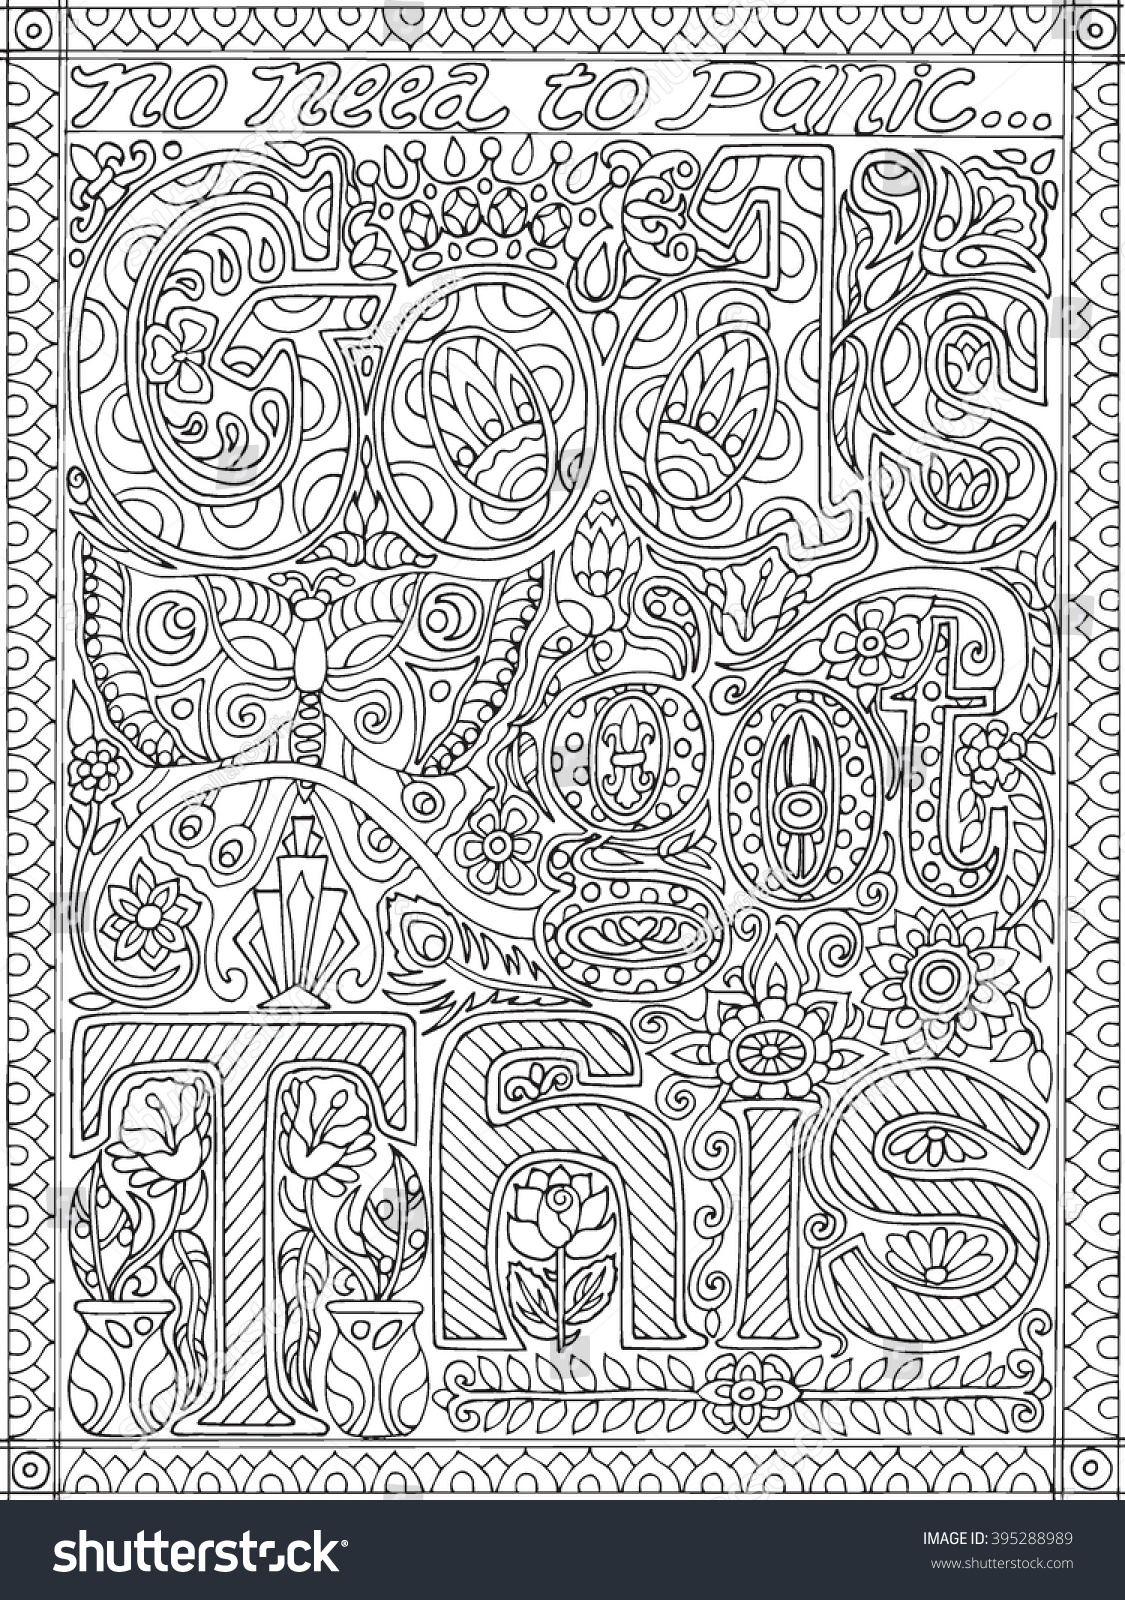 gods got this coloring book stock vector 395288989